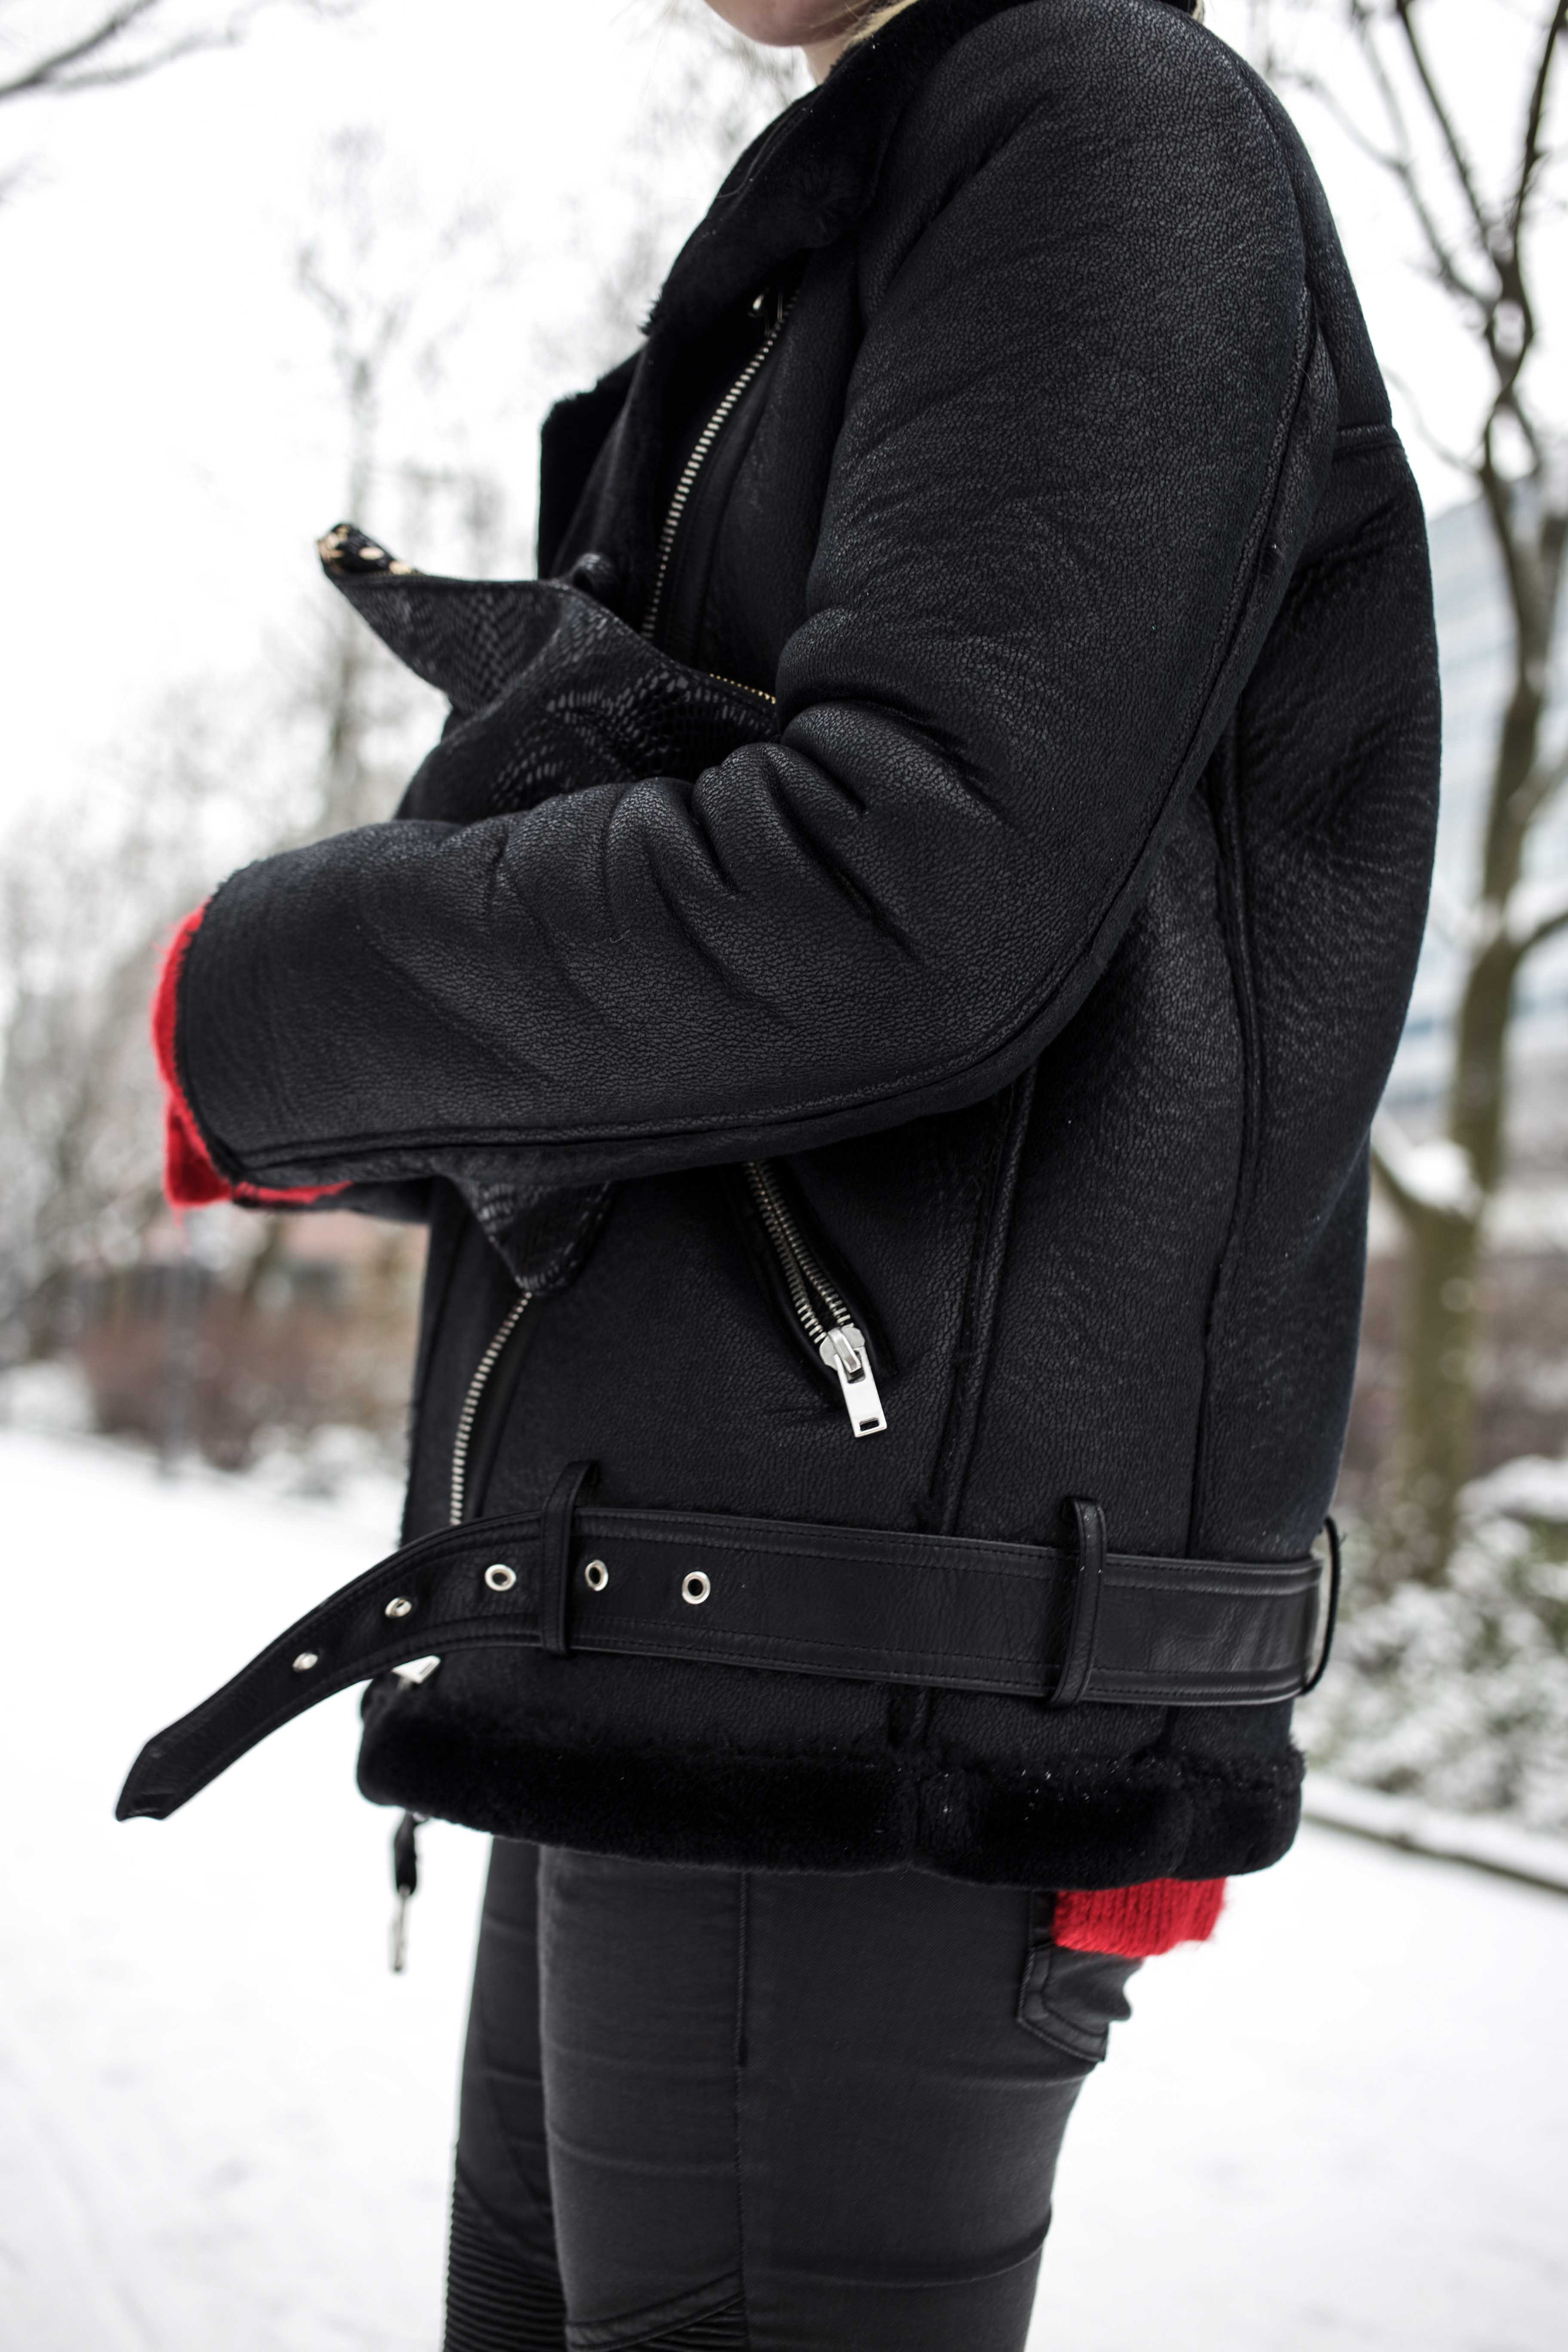 roter-pullover-outfit-berlin-schnee-streetstyle-fashionblog-modeblog_8386